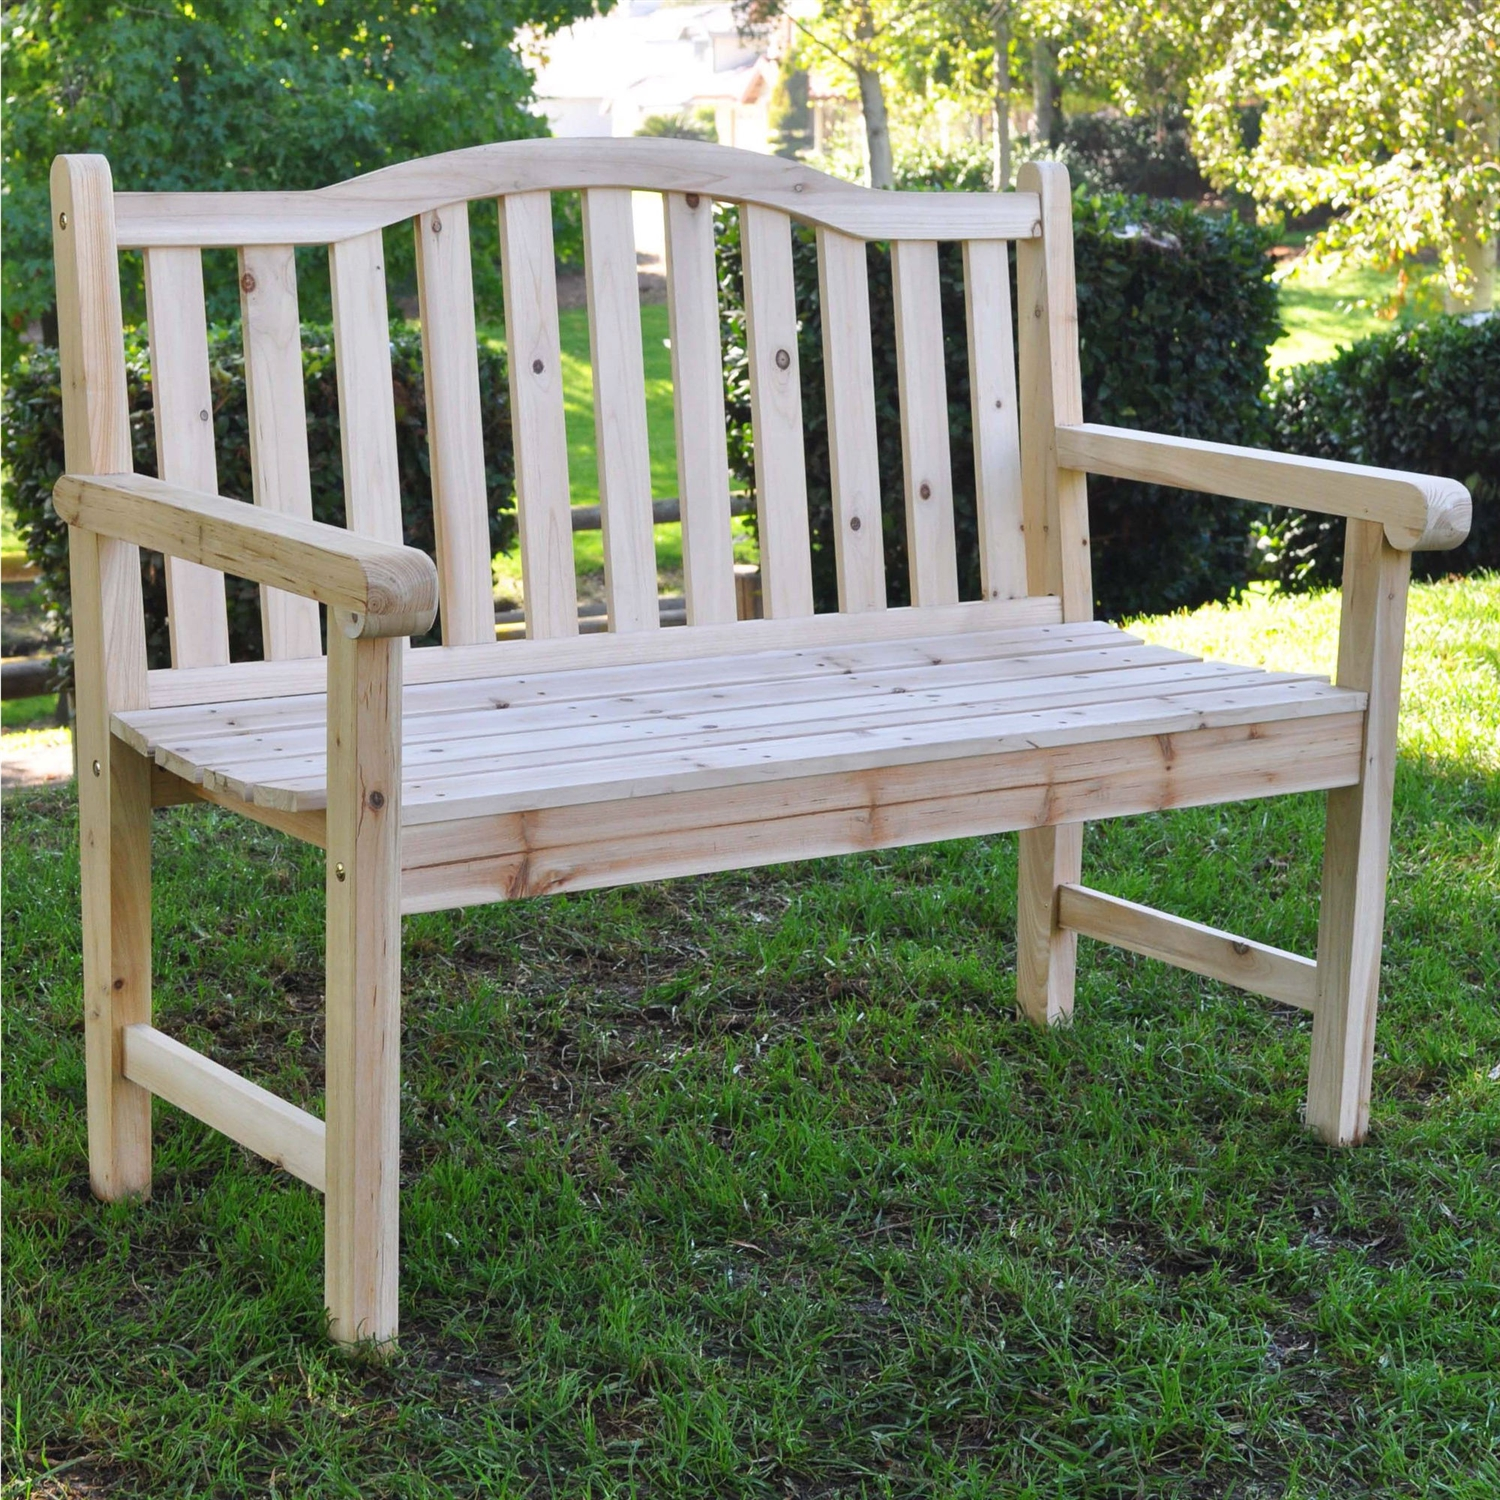 Outdoor Cedar Wood Garden Bench In Natural With 475lbs Weight Limit